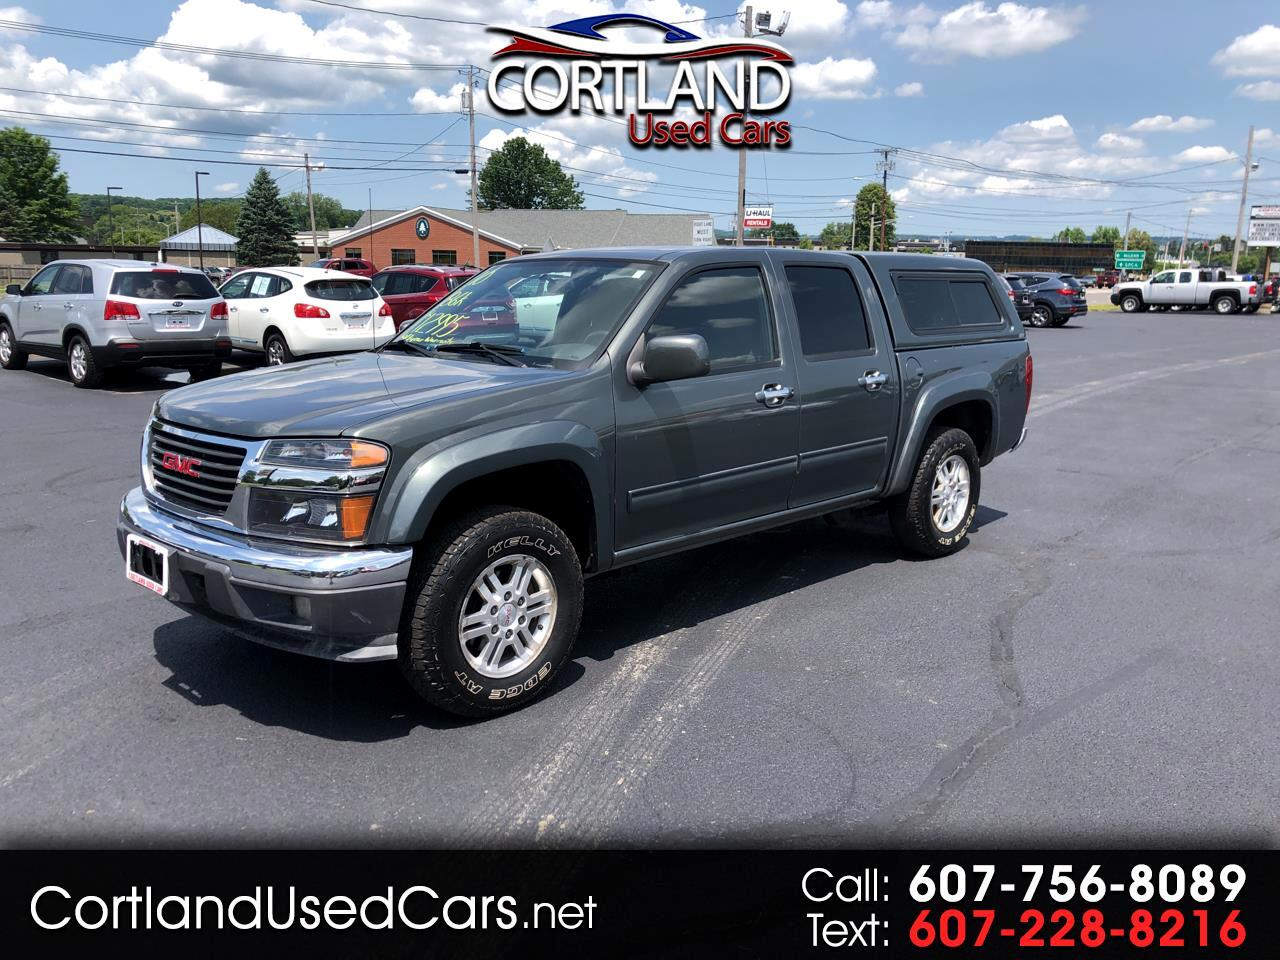 2010 GMC Canyon 4WD Crew Cab 126.0